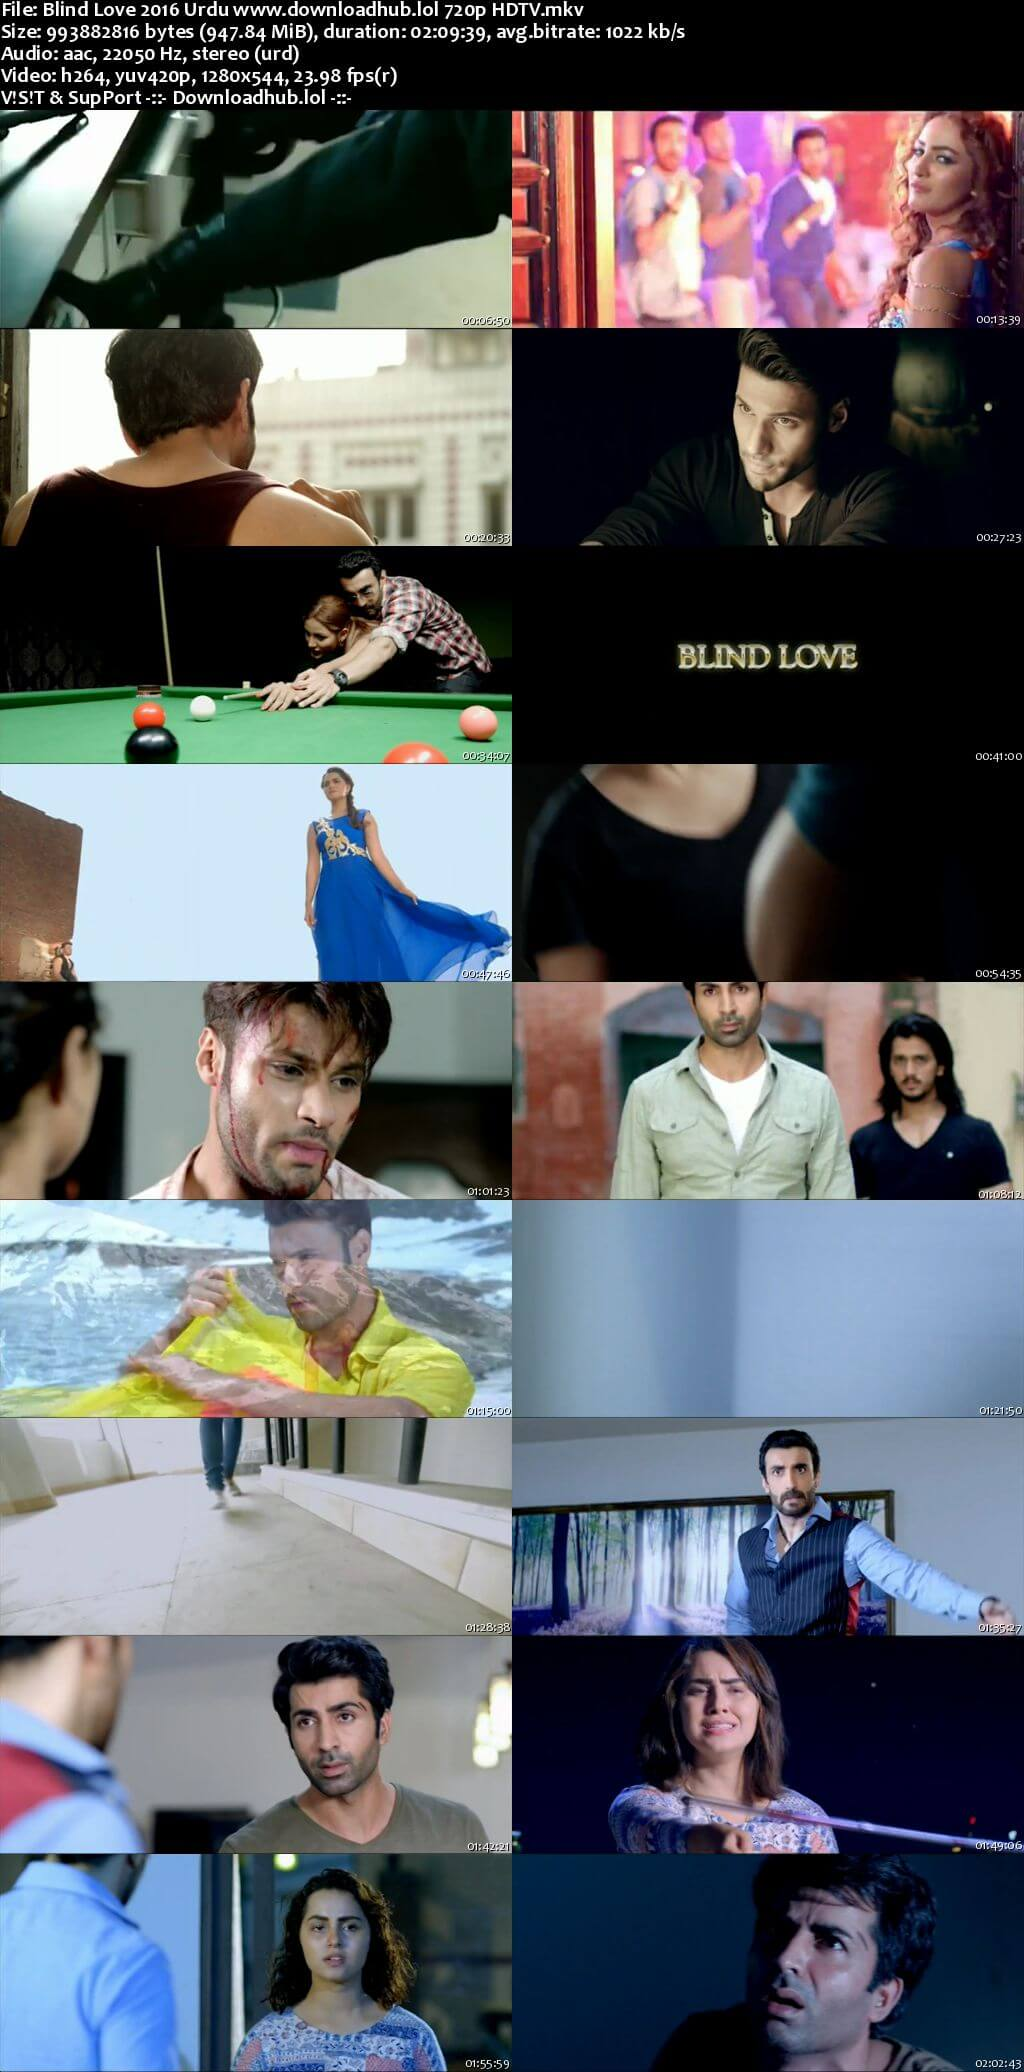 Blind Love 2016 Urdu 720p HDTV x264